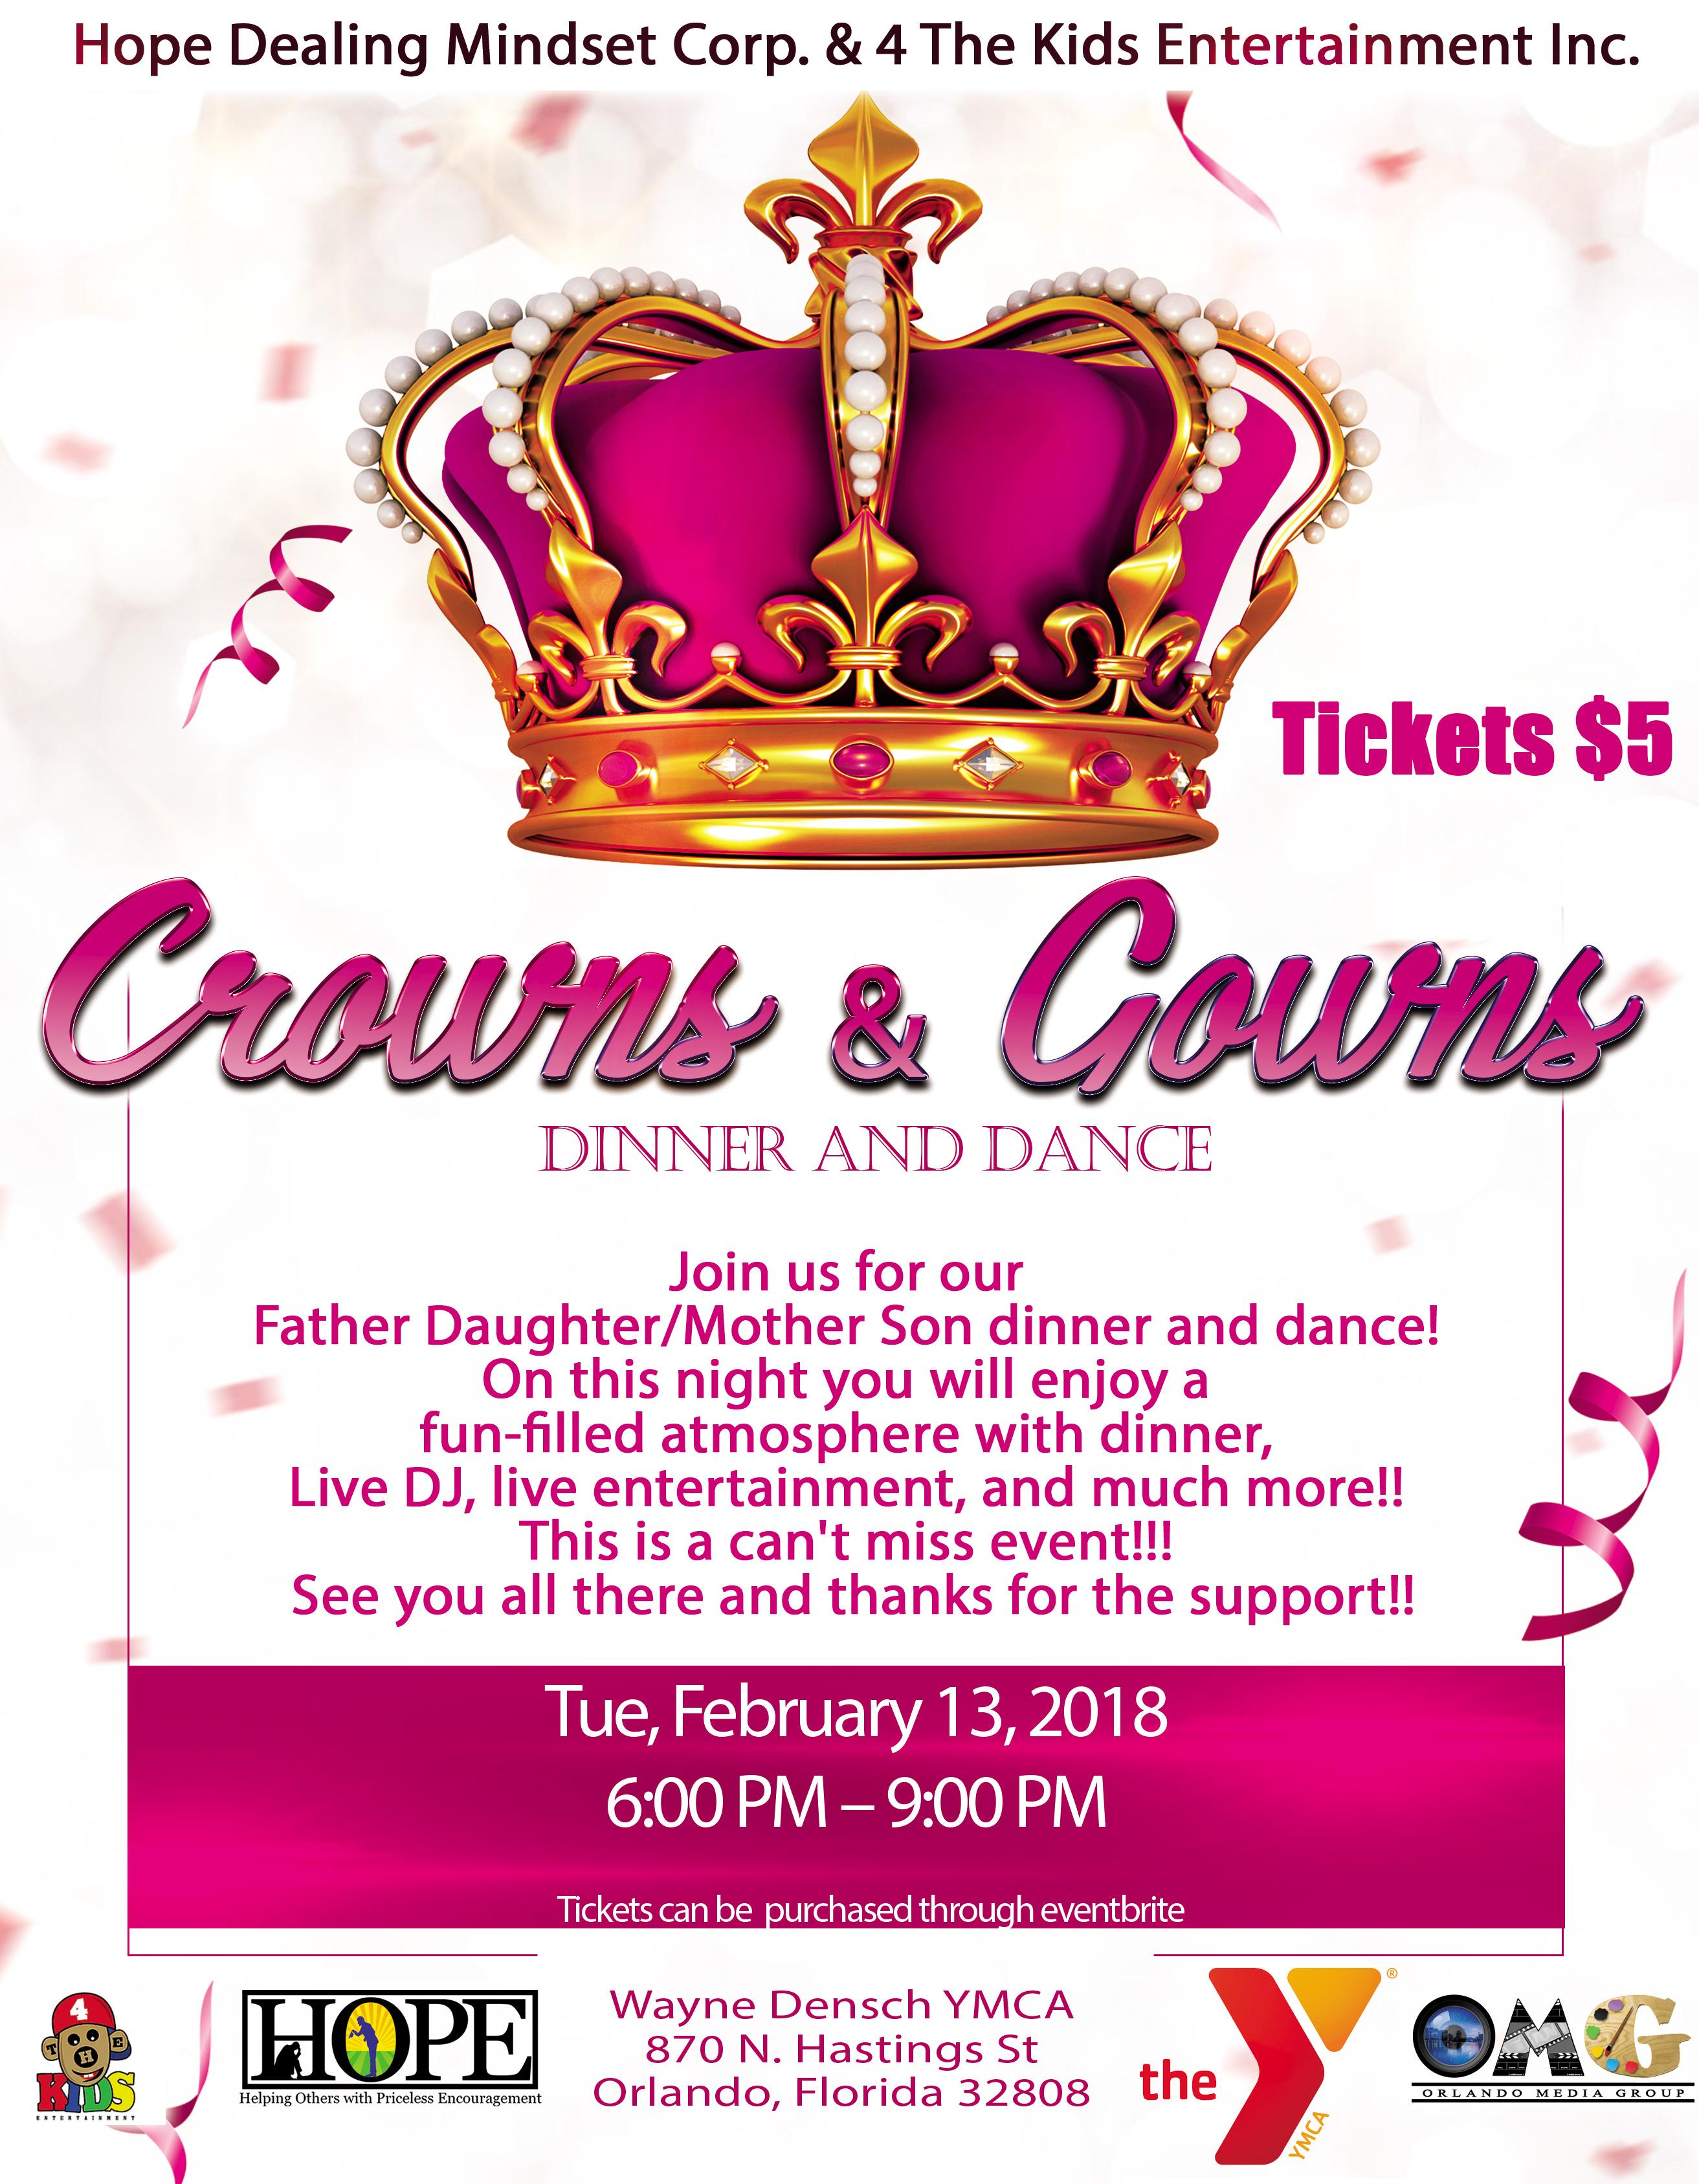 Crowns and Gowns Dinner and Dance - 13 FEB 2018